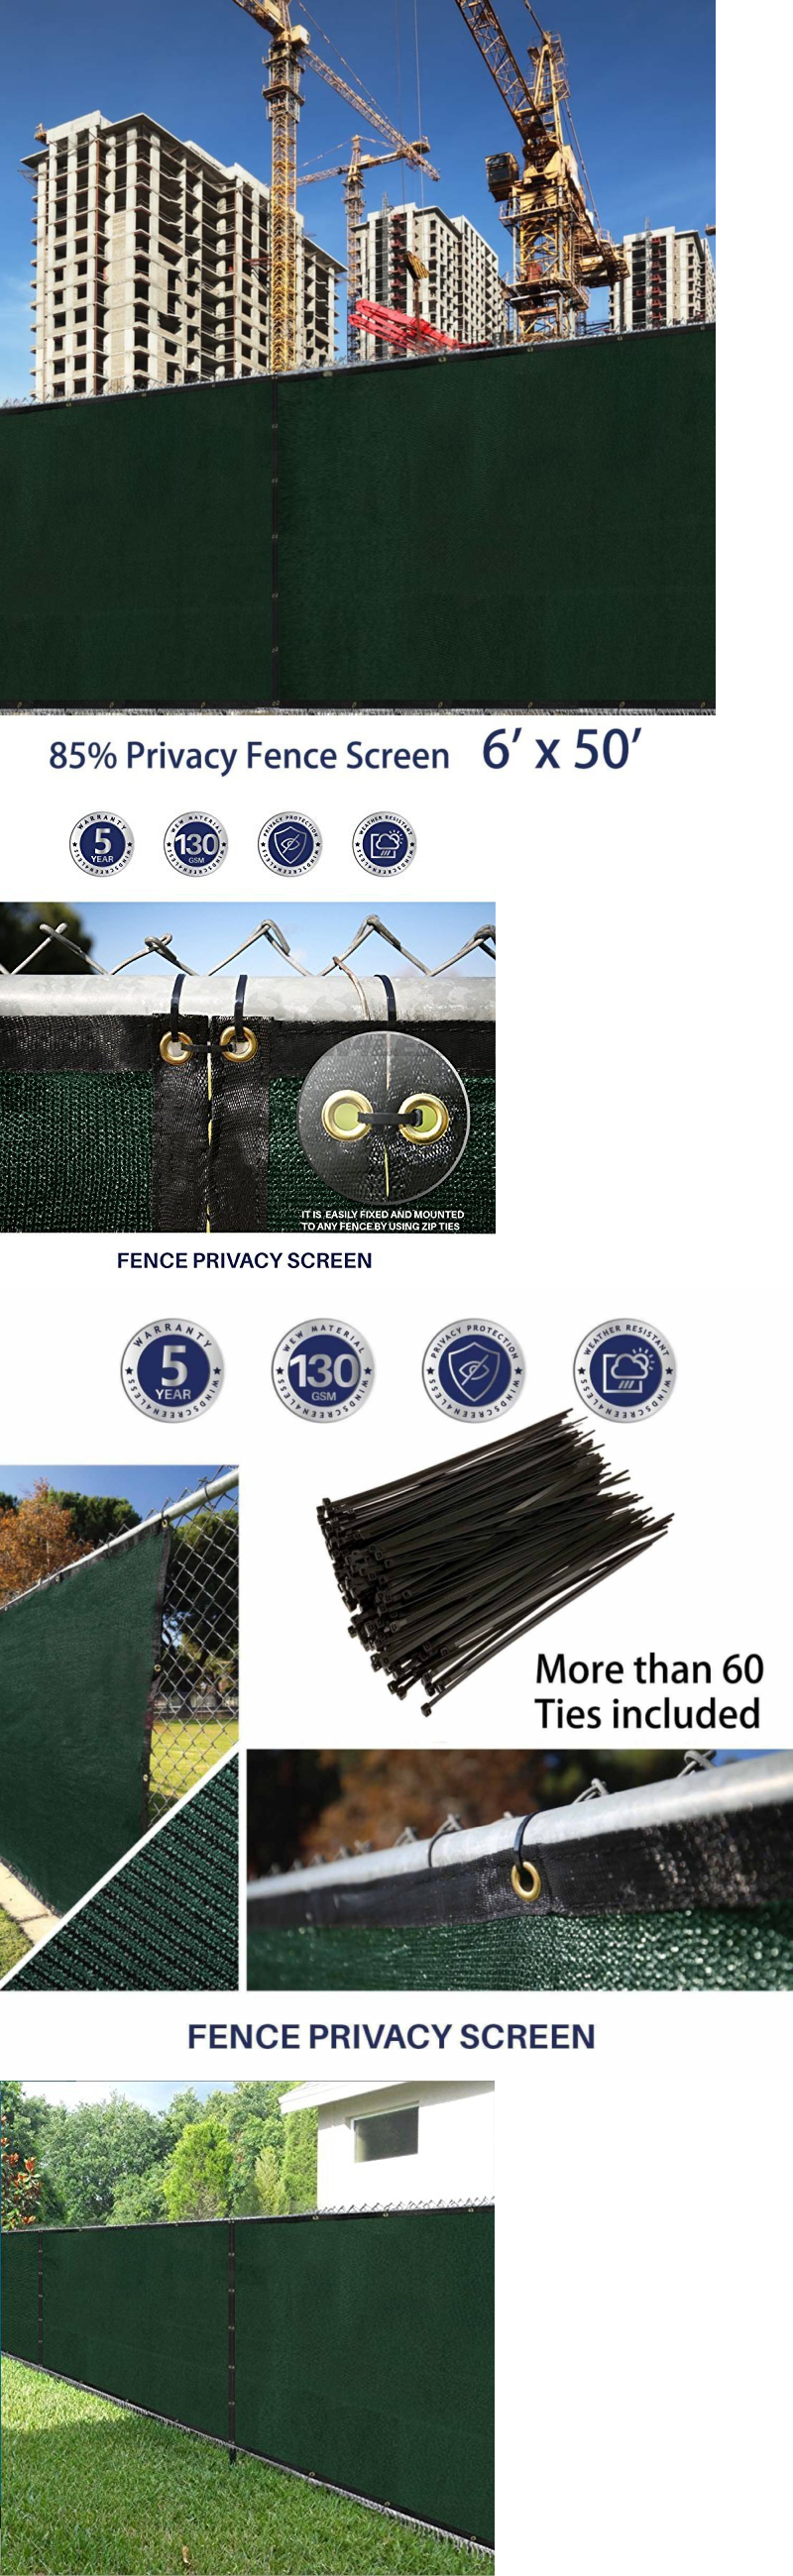 Privacy screen for chain link fence ebay - Privacy Screens Windscreens 180991 Privacy Fence Screen 6x50 Chain Link Fencing Cover Materials With Brass